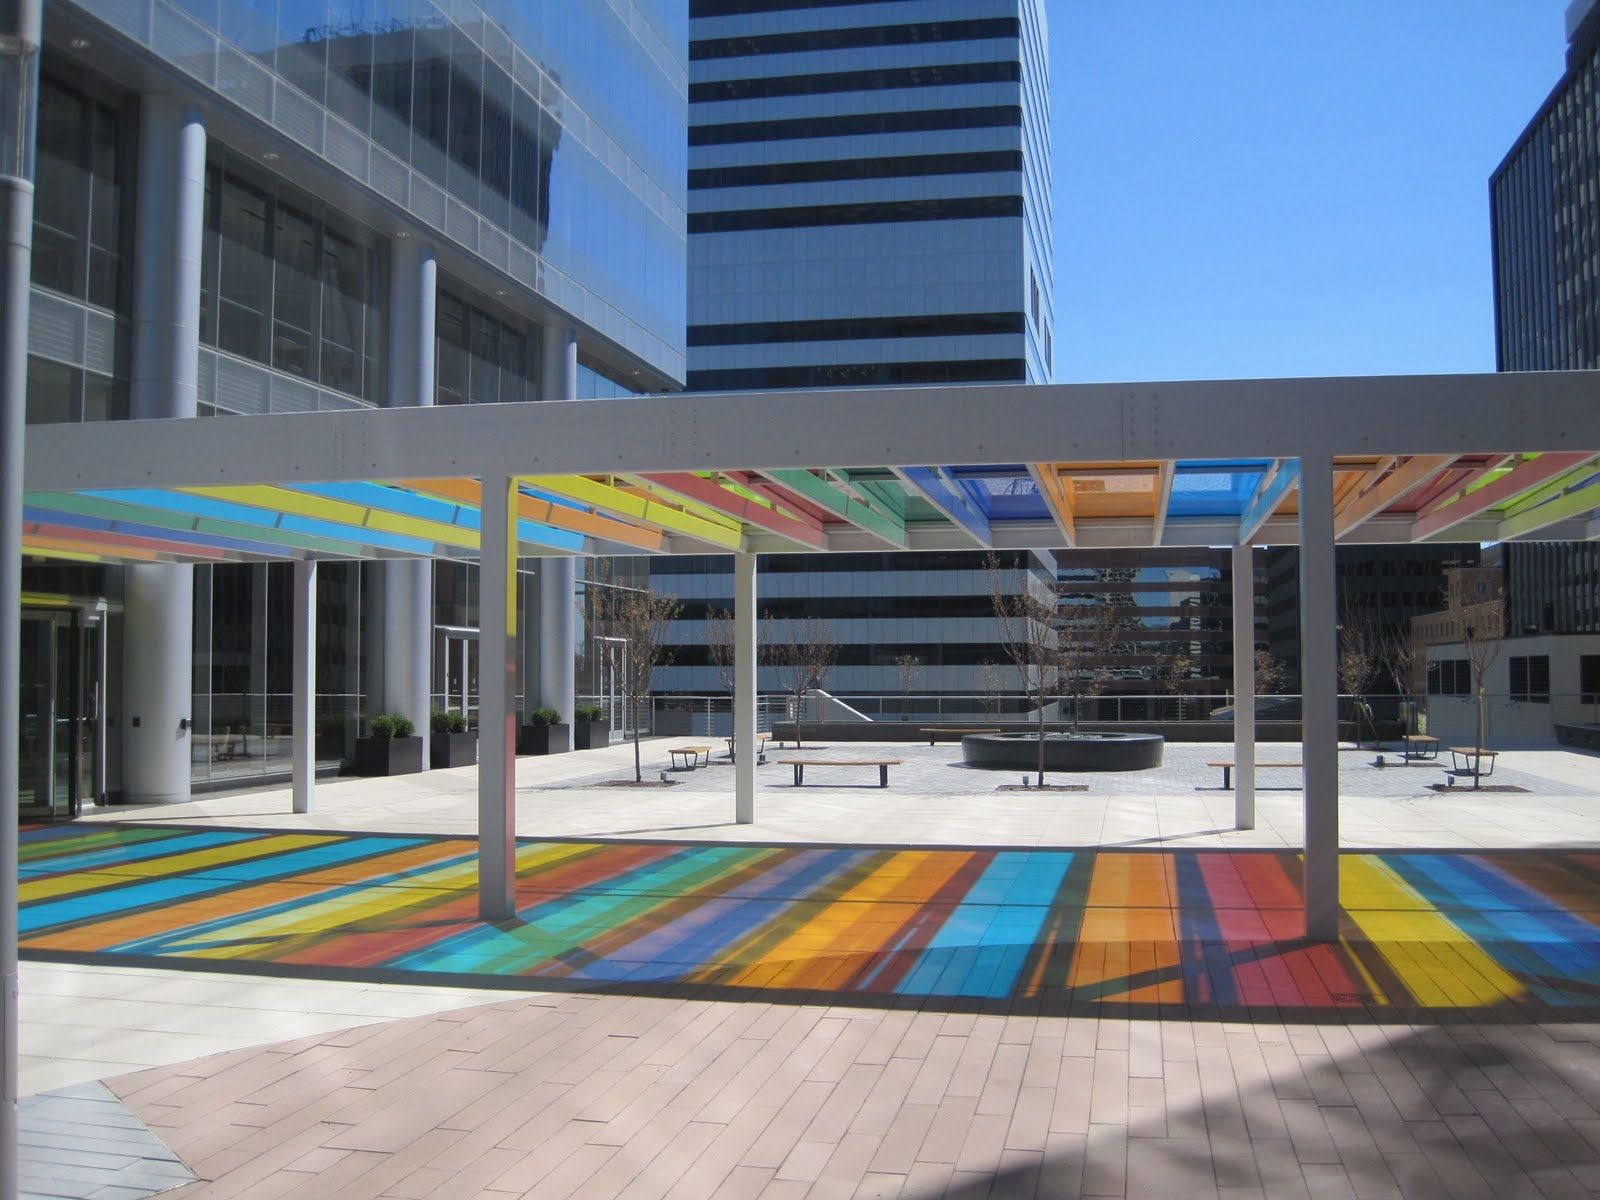 Canopy by Liam Gillick in downtown Clayton, MO ...